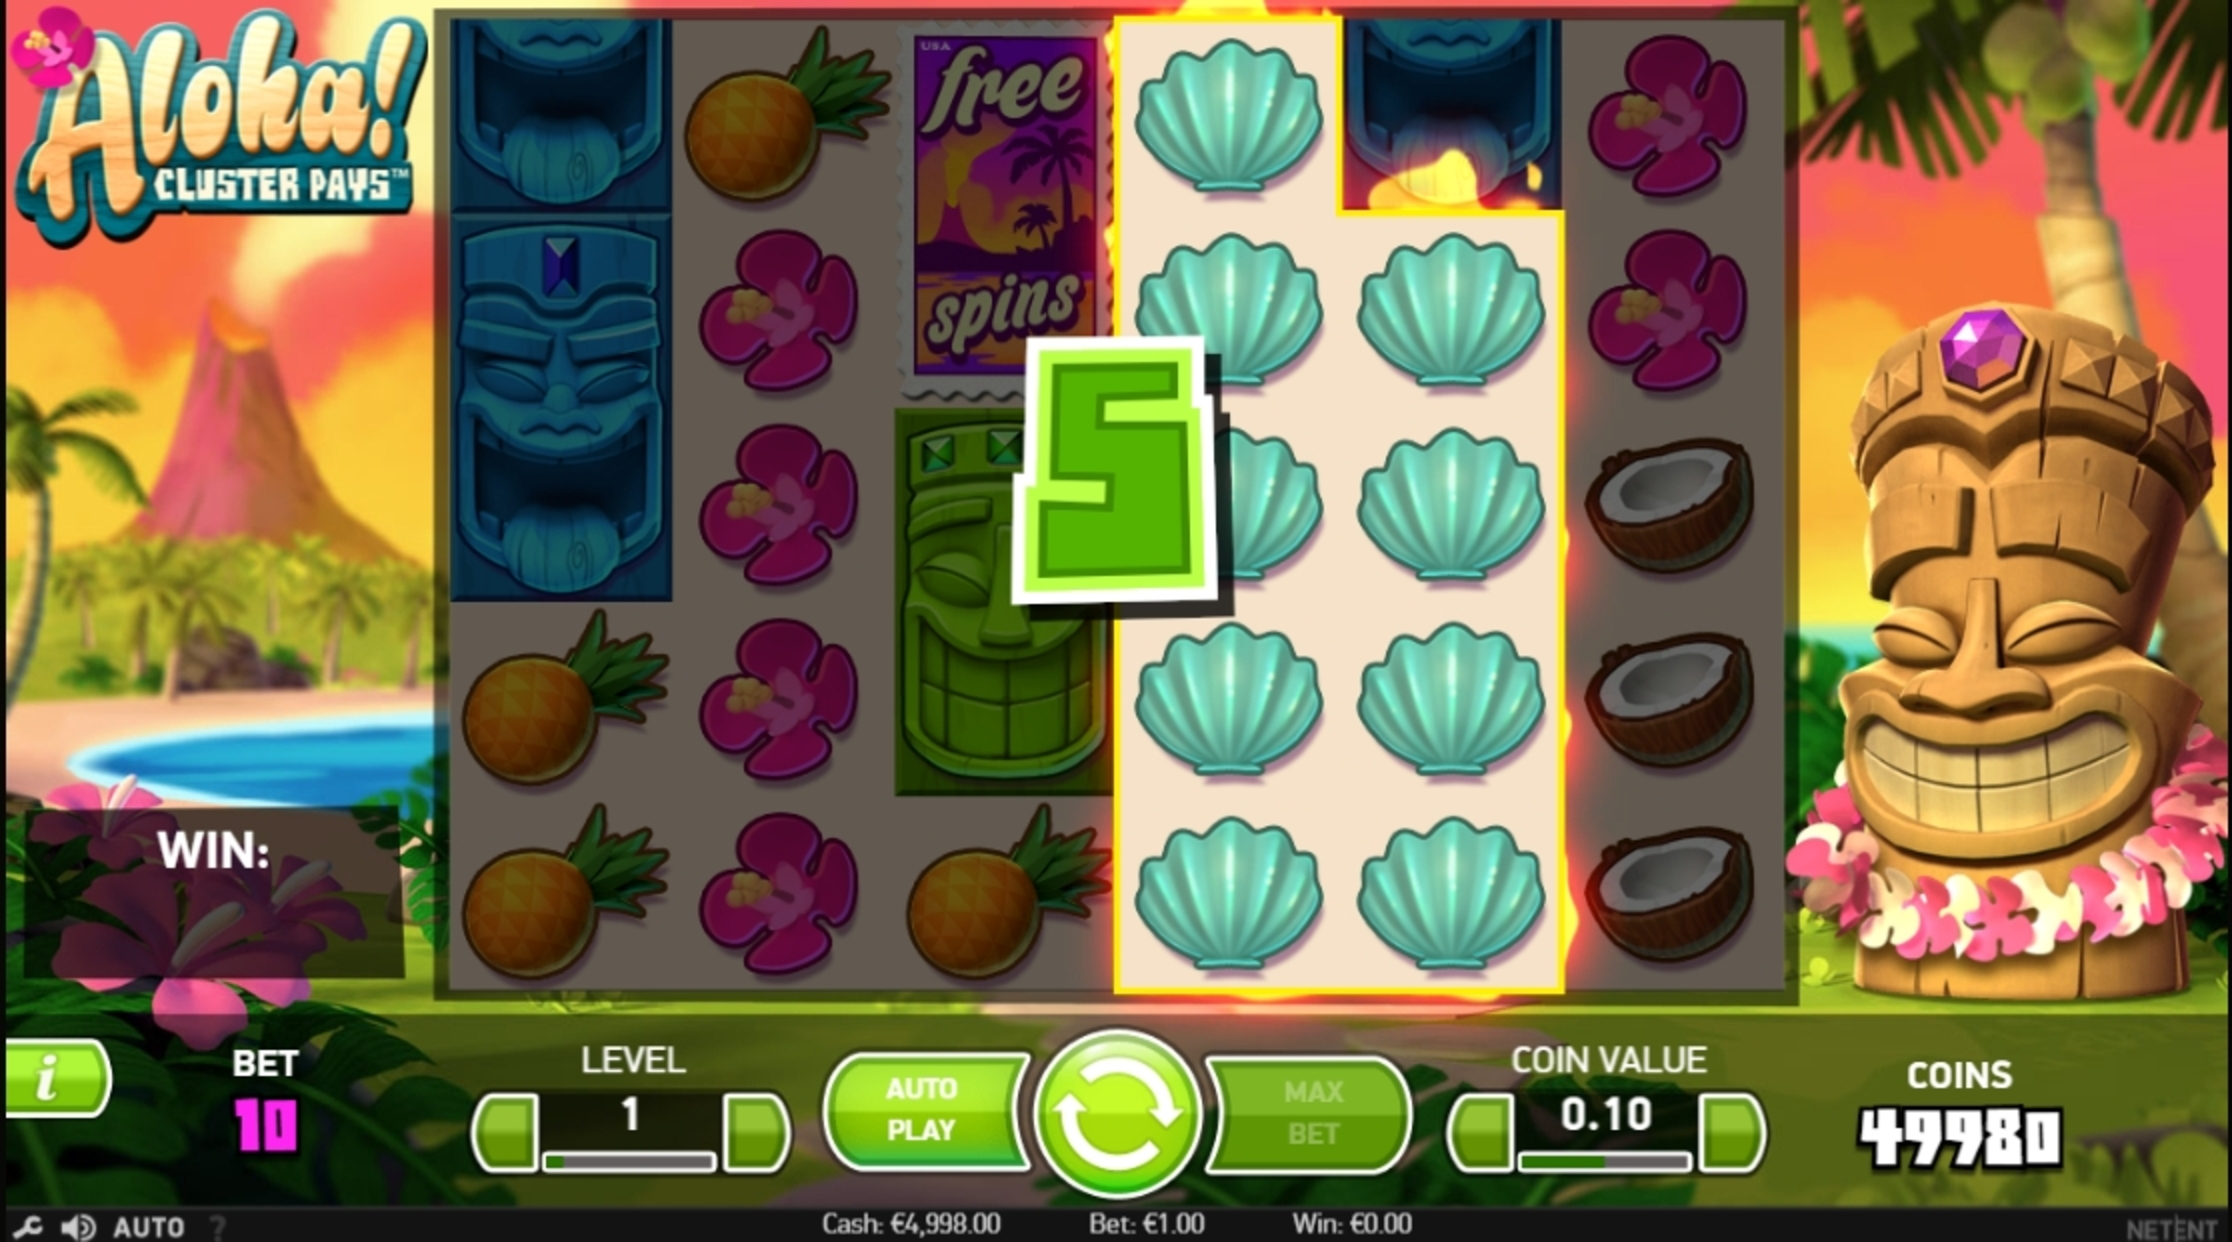 Win Money in Aloha! Cluster Pays Free Slot Game by NetEnt